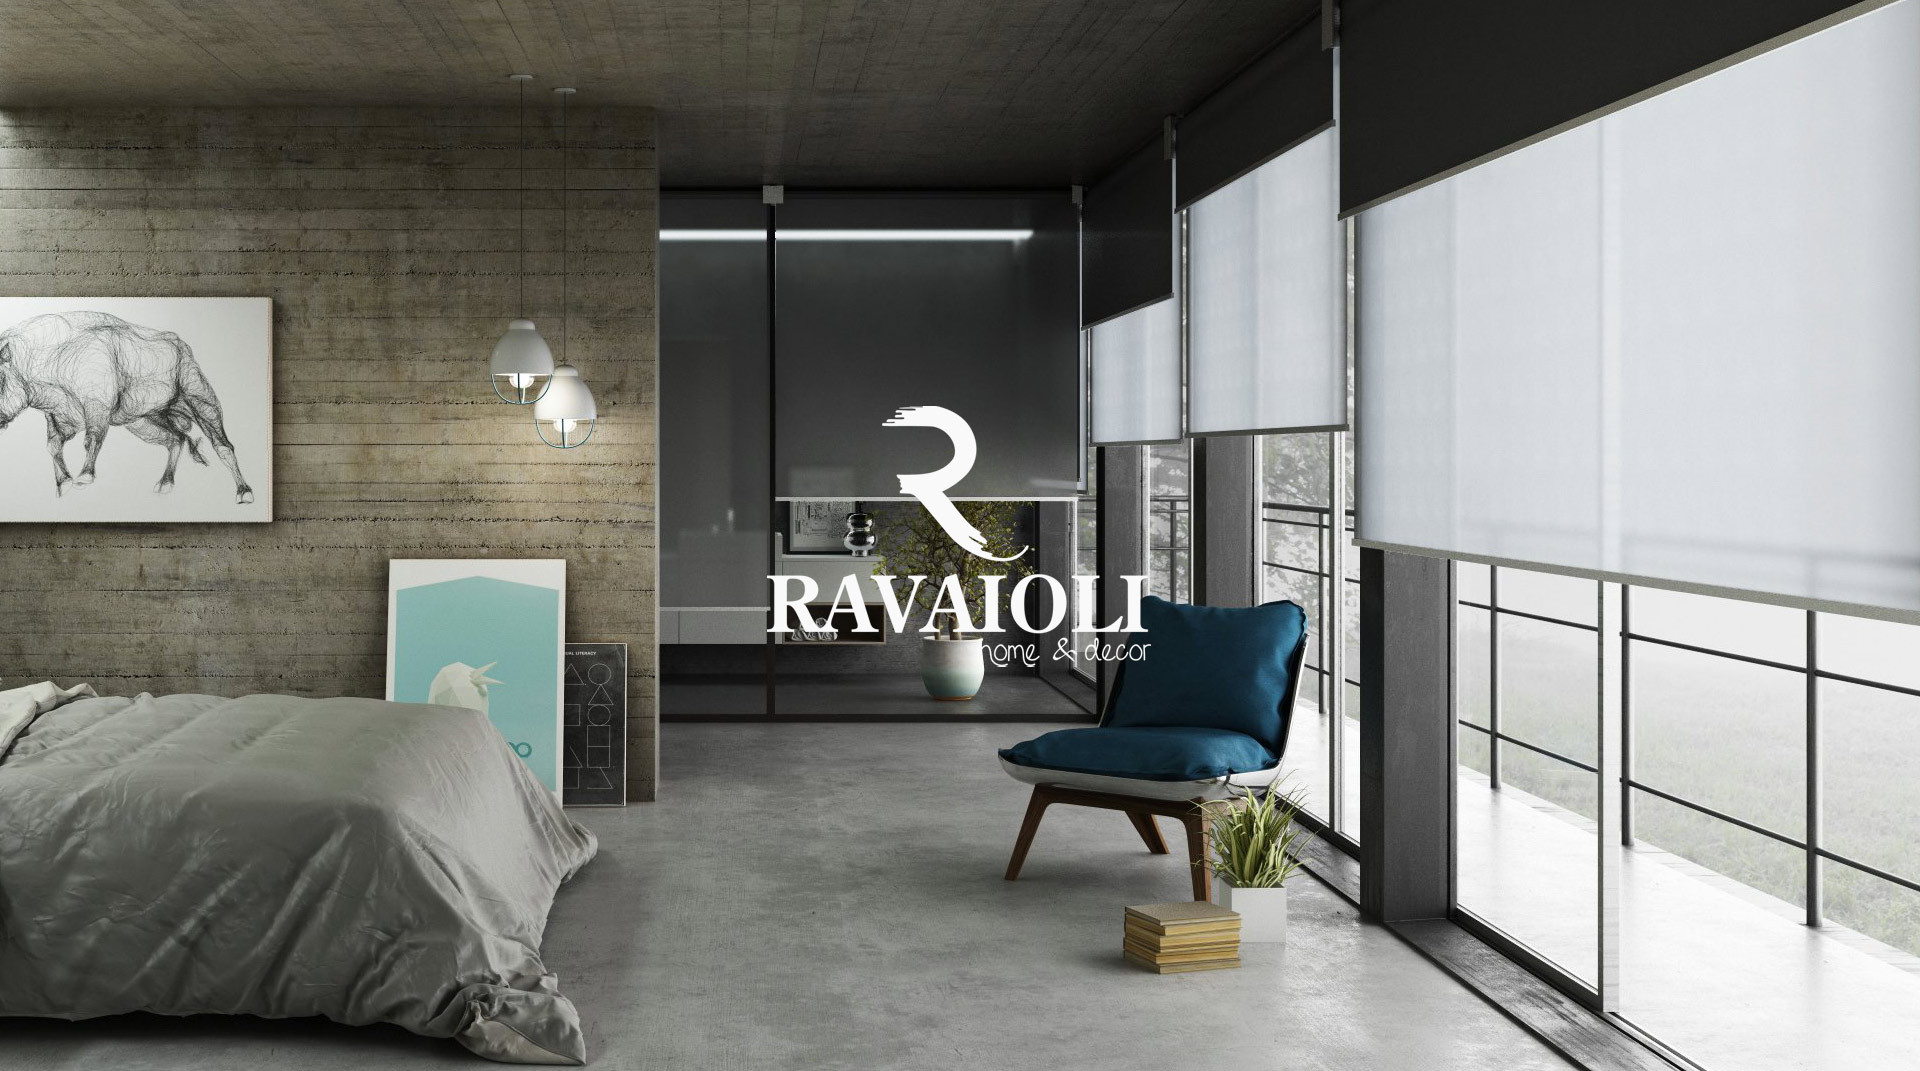 Ravaioli home decor - Fiera biancheria per la casa ...